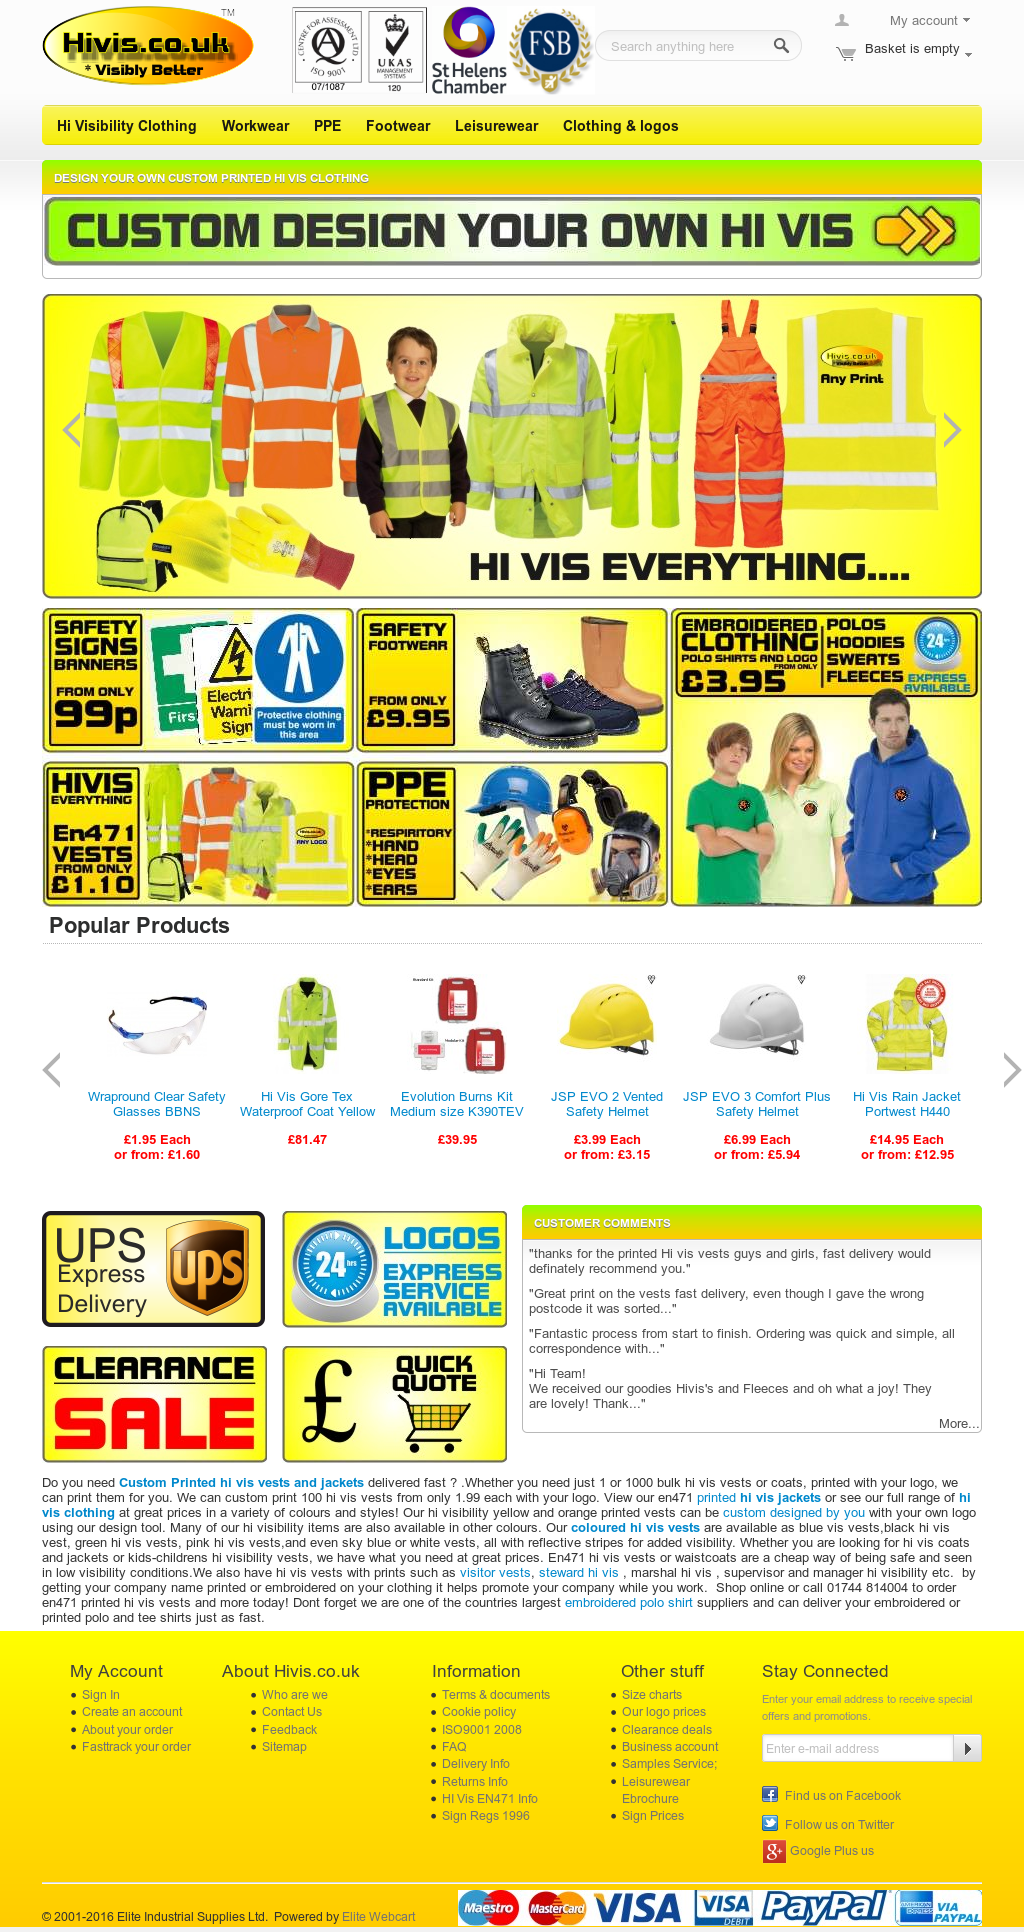 Hivis co uk Workwear Competitors, Revenue and Employees